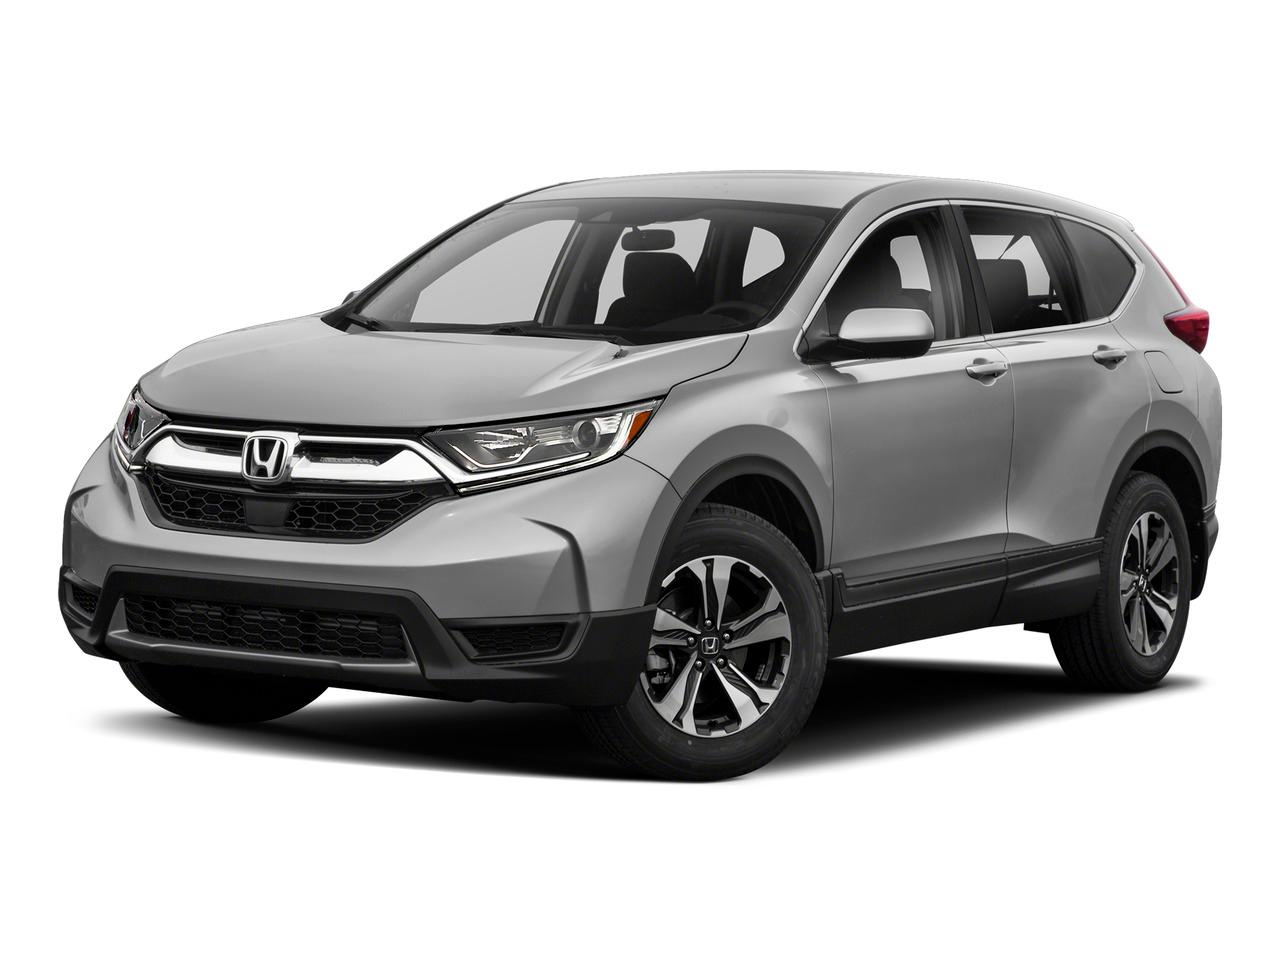 2018 Honda CR-V Vehicle Photo in Owensboro, KY 42303